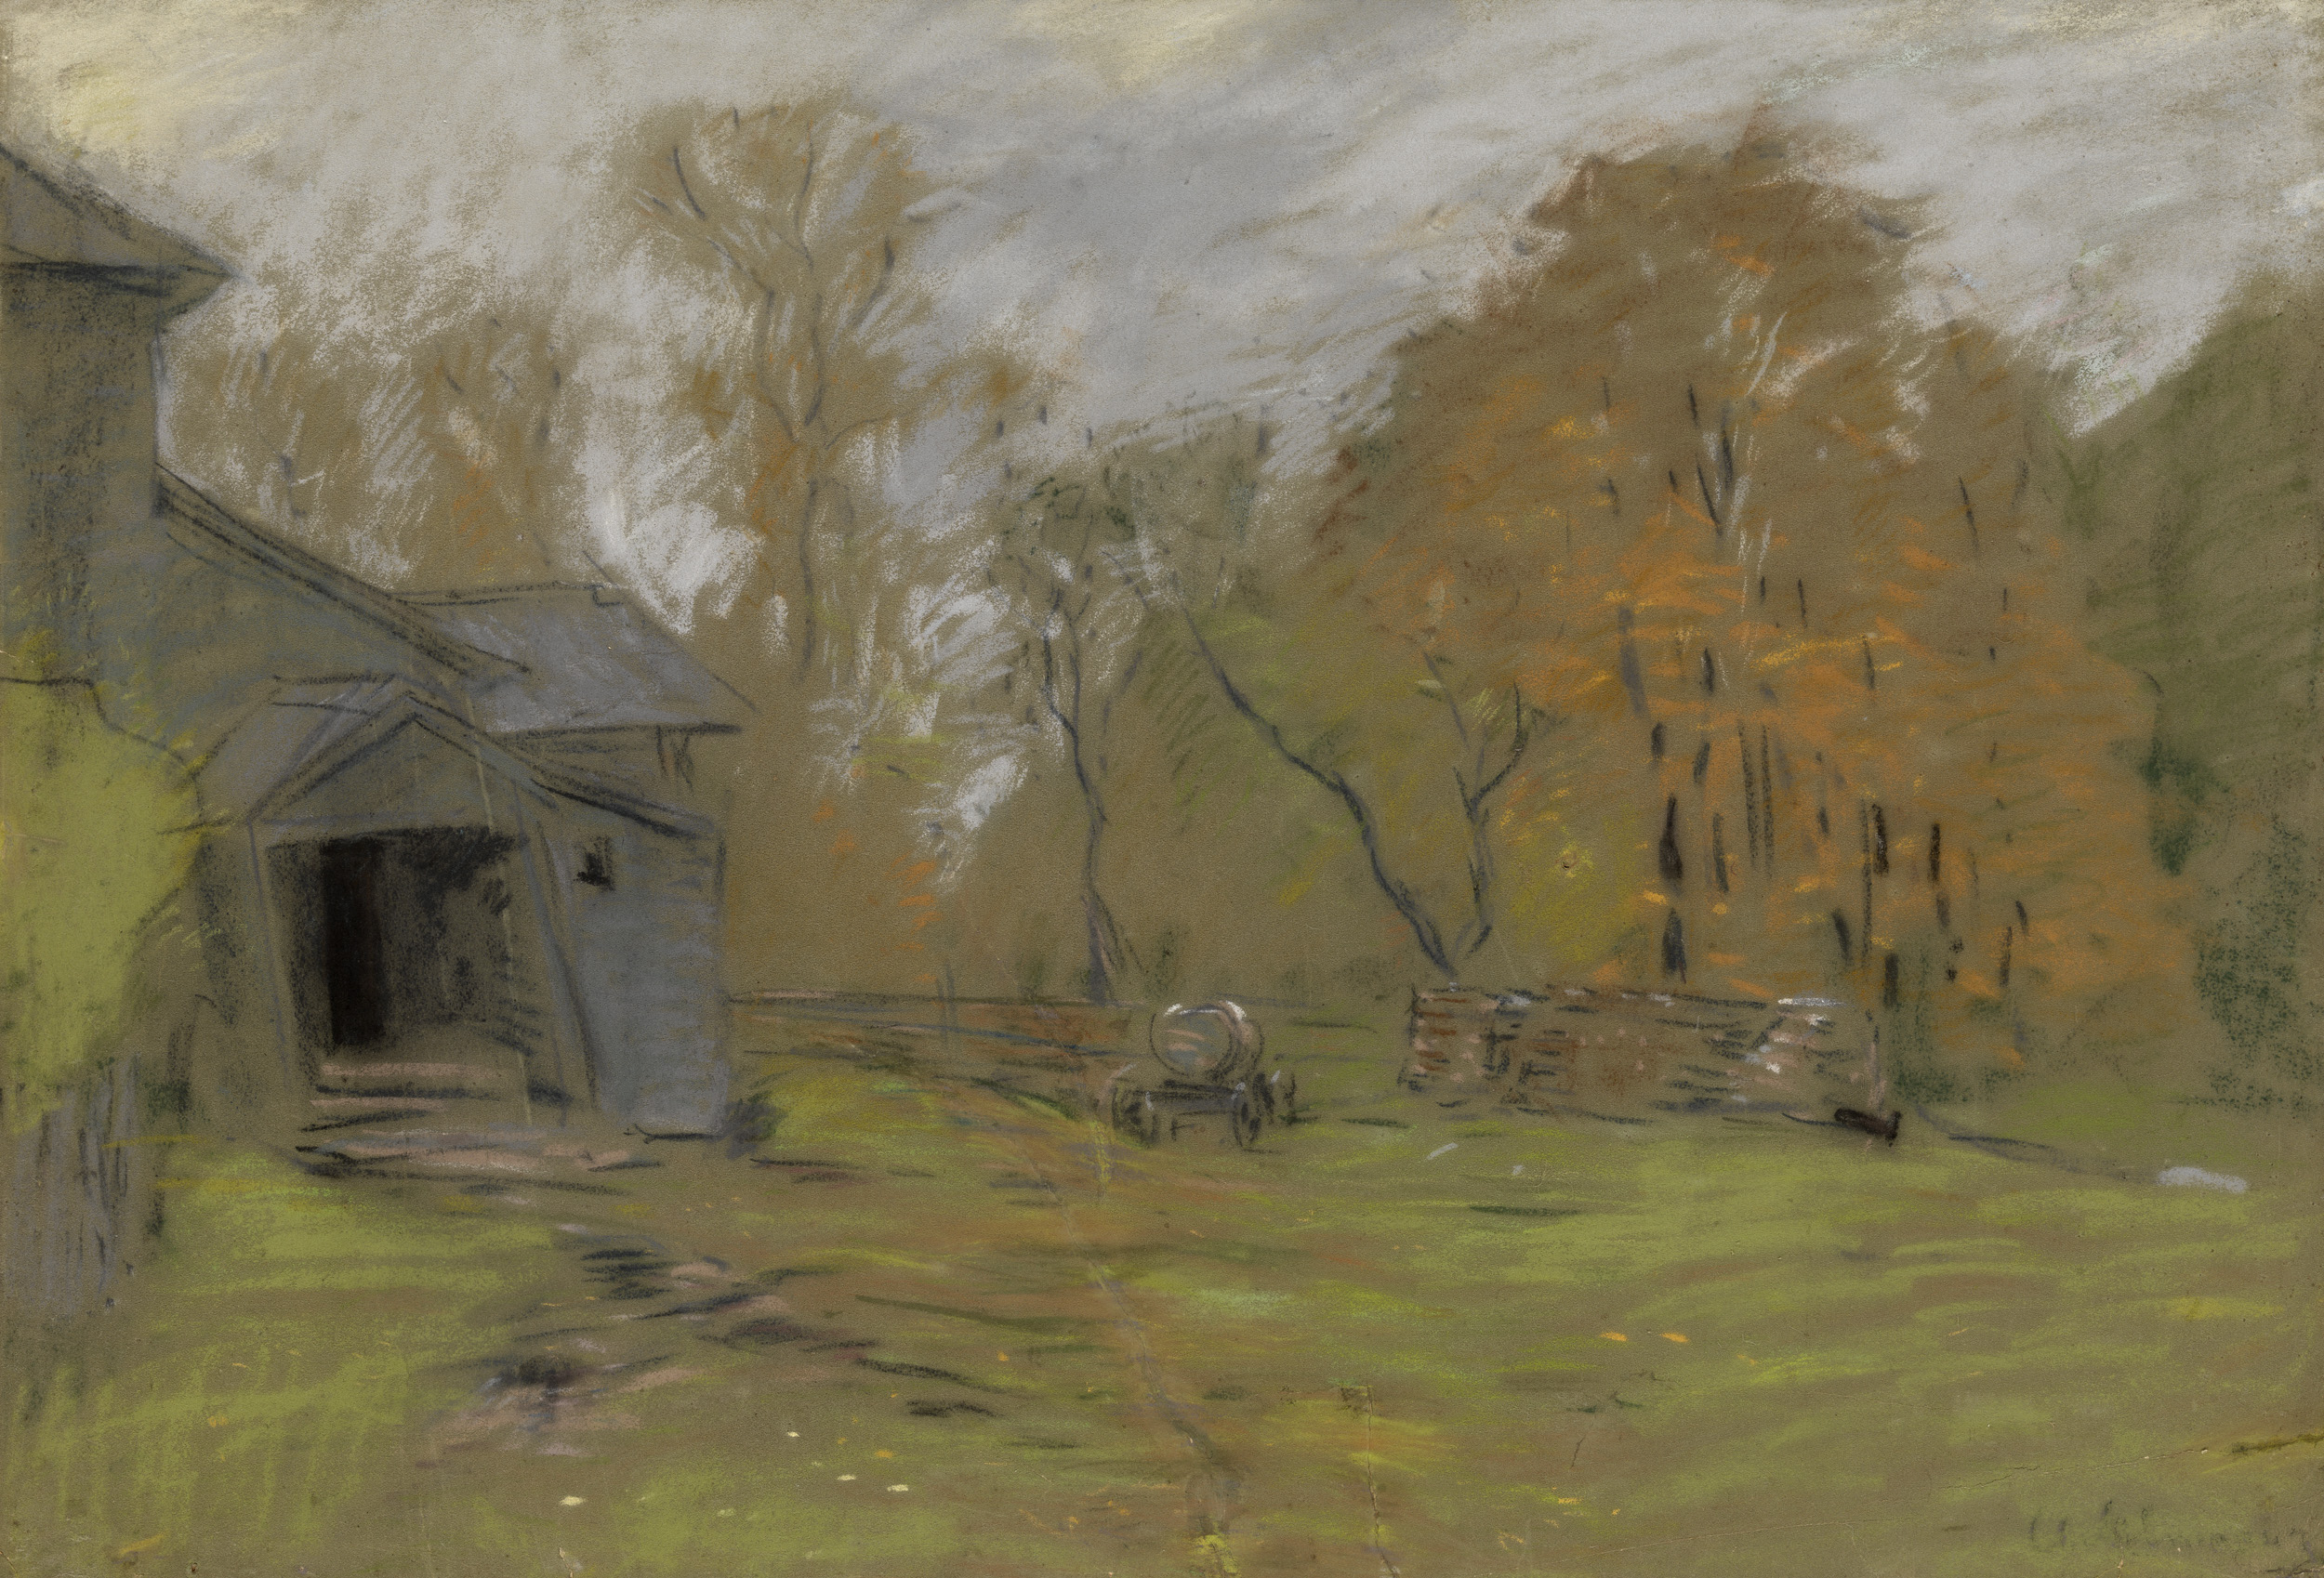 Lot 72 Isaak Levitan, Autumn